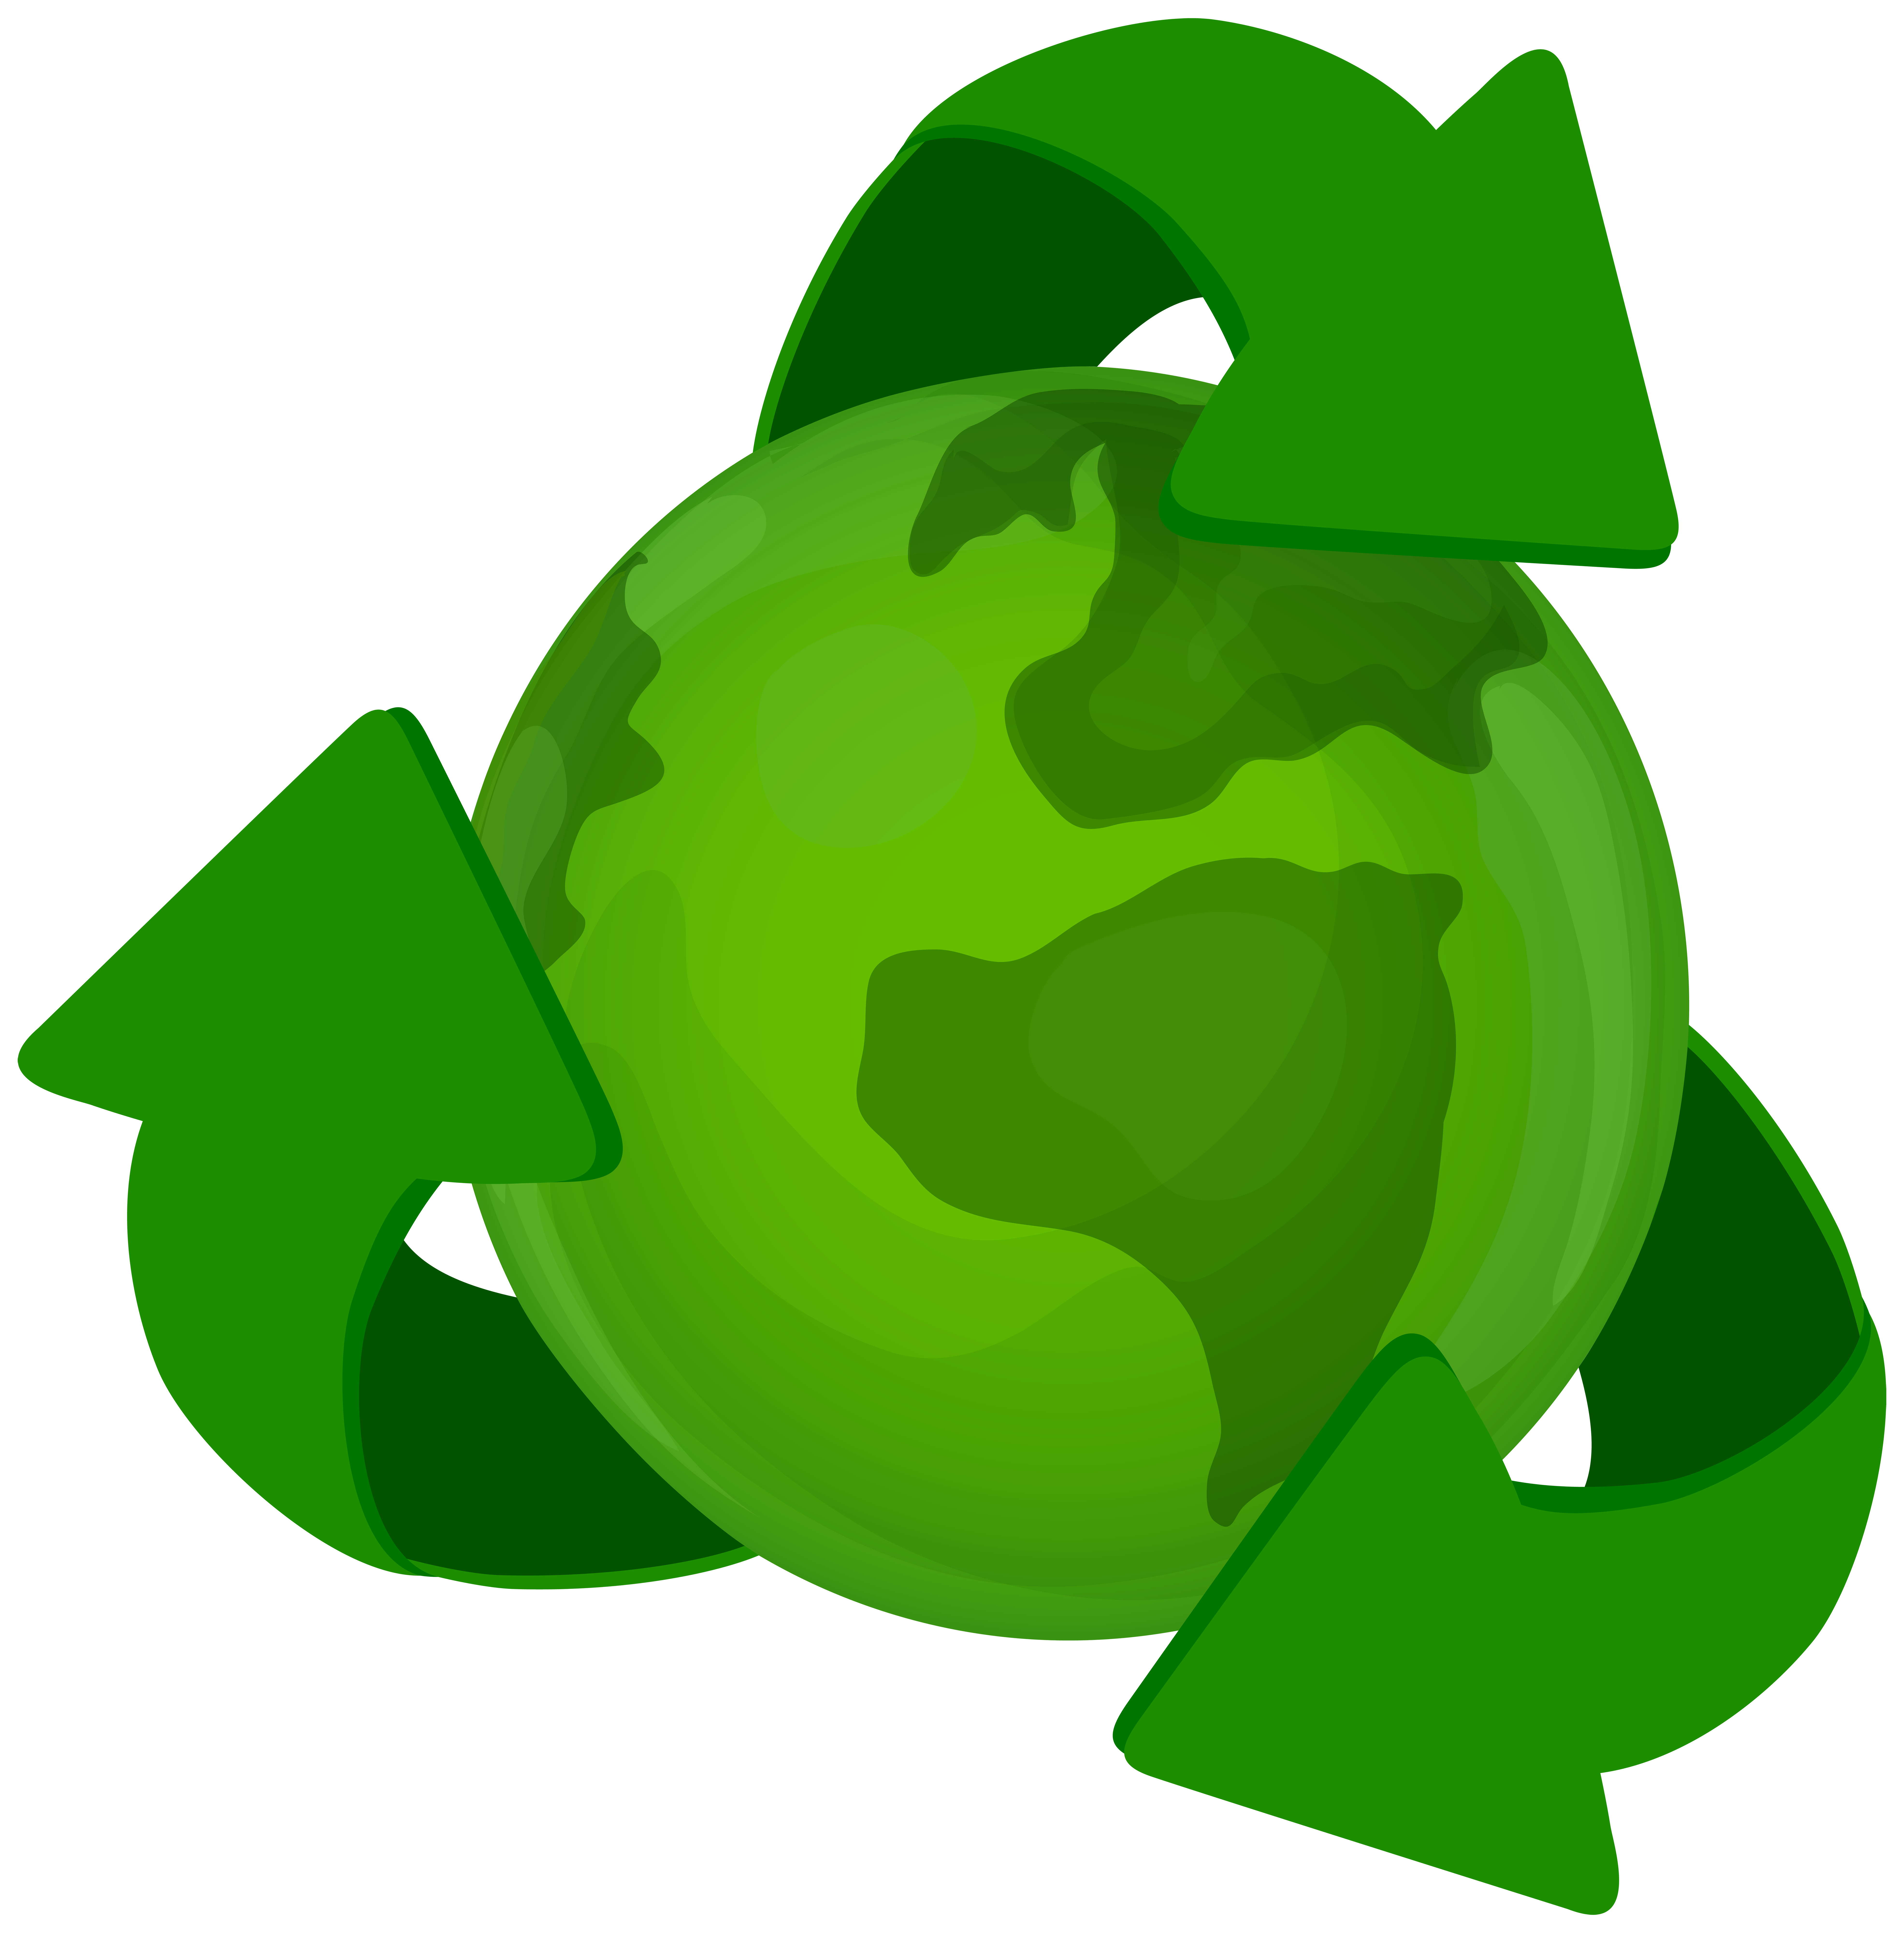 Earth with recycle symbol. Planeten clipart green planet